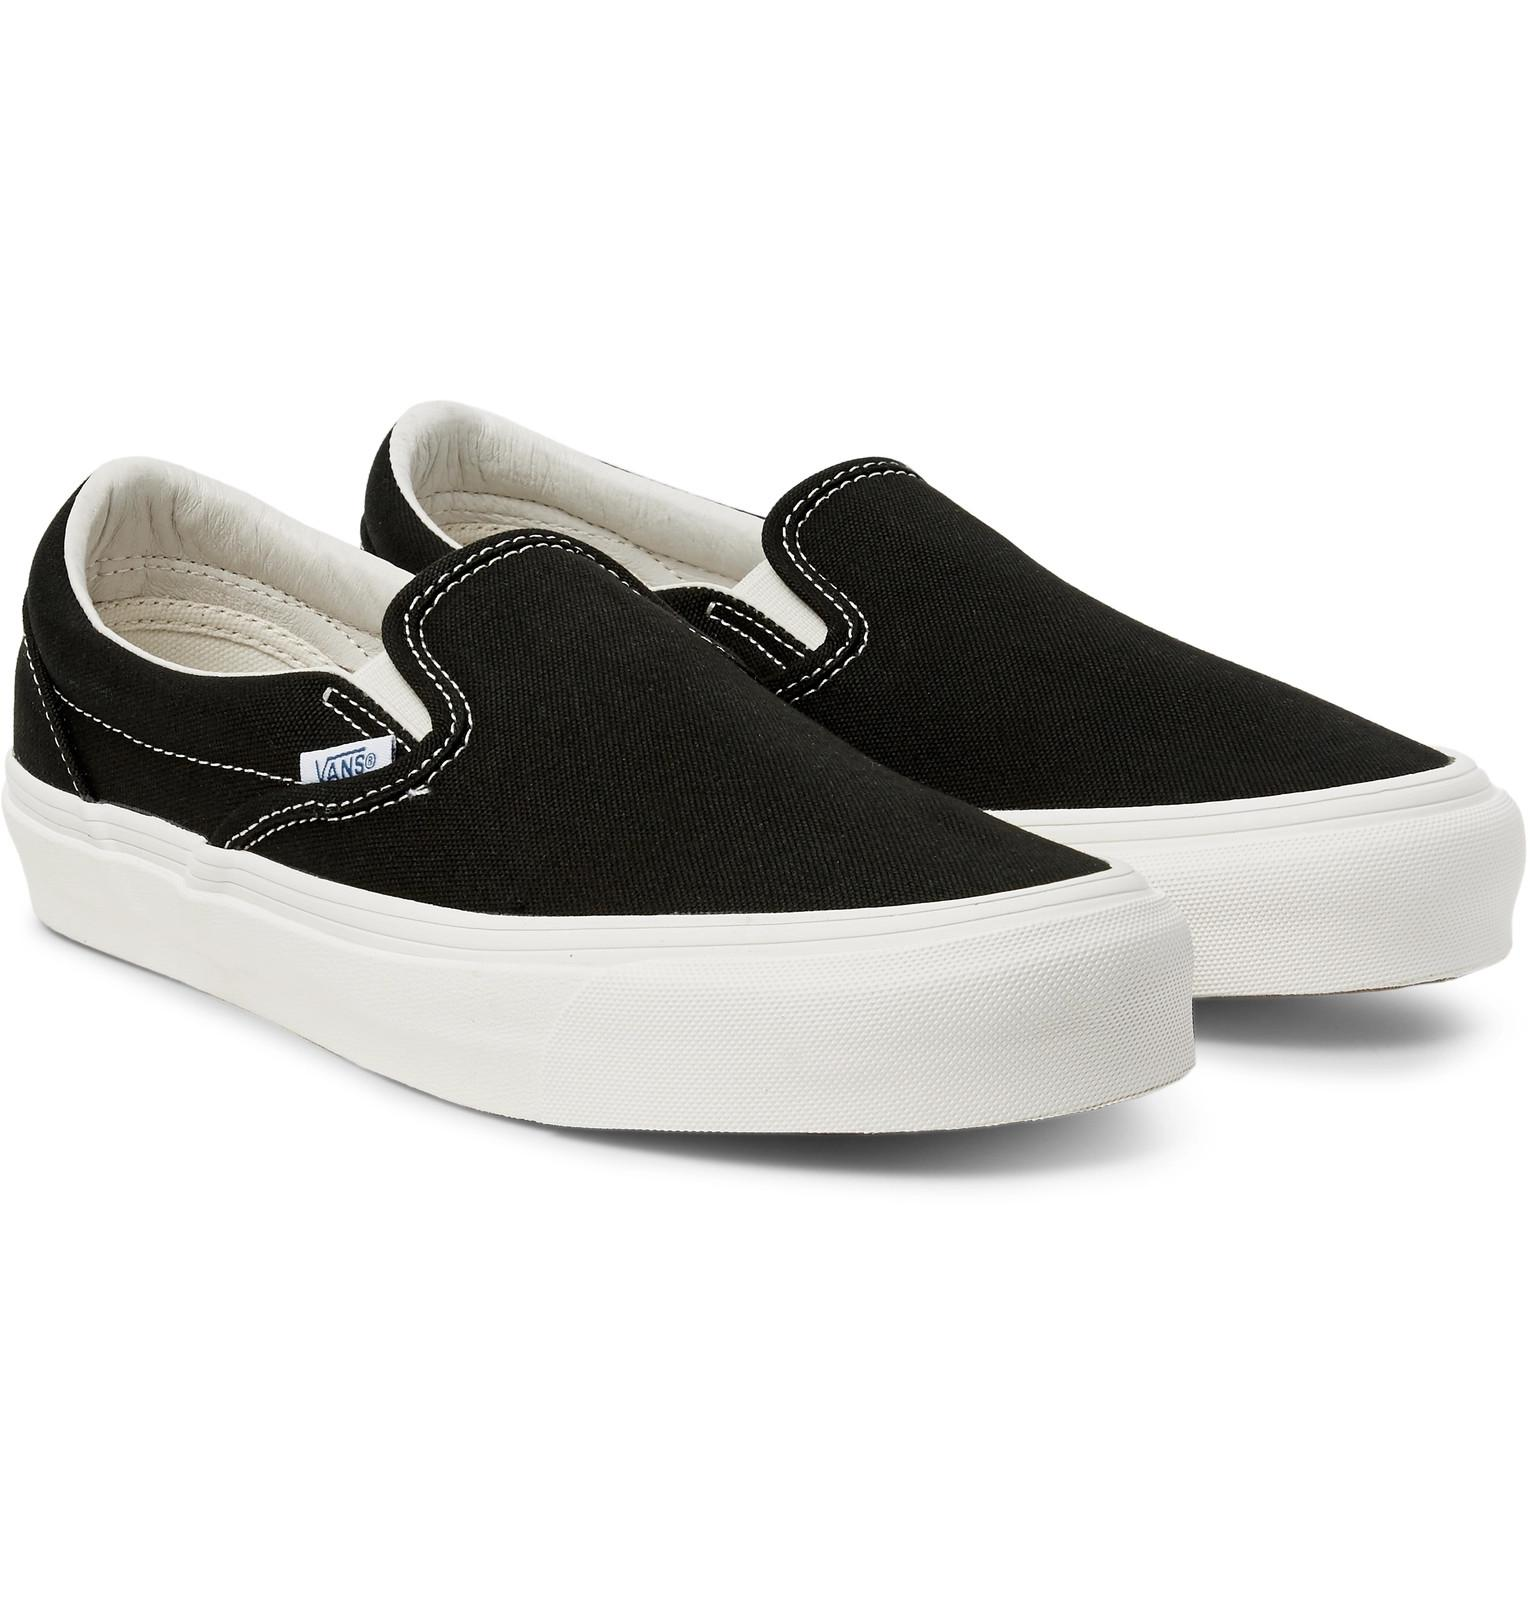 d26dd99649 Lyst - Vans Og Classic Lx Canvas Slip-on Sneakers in Black for Men ...